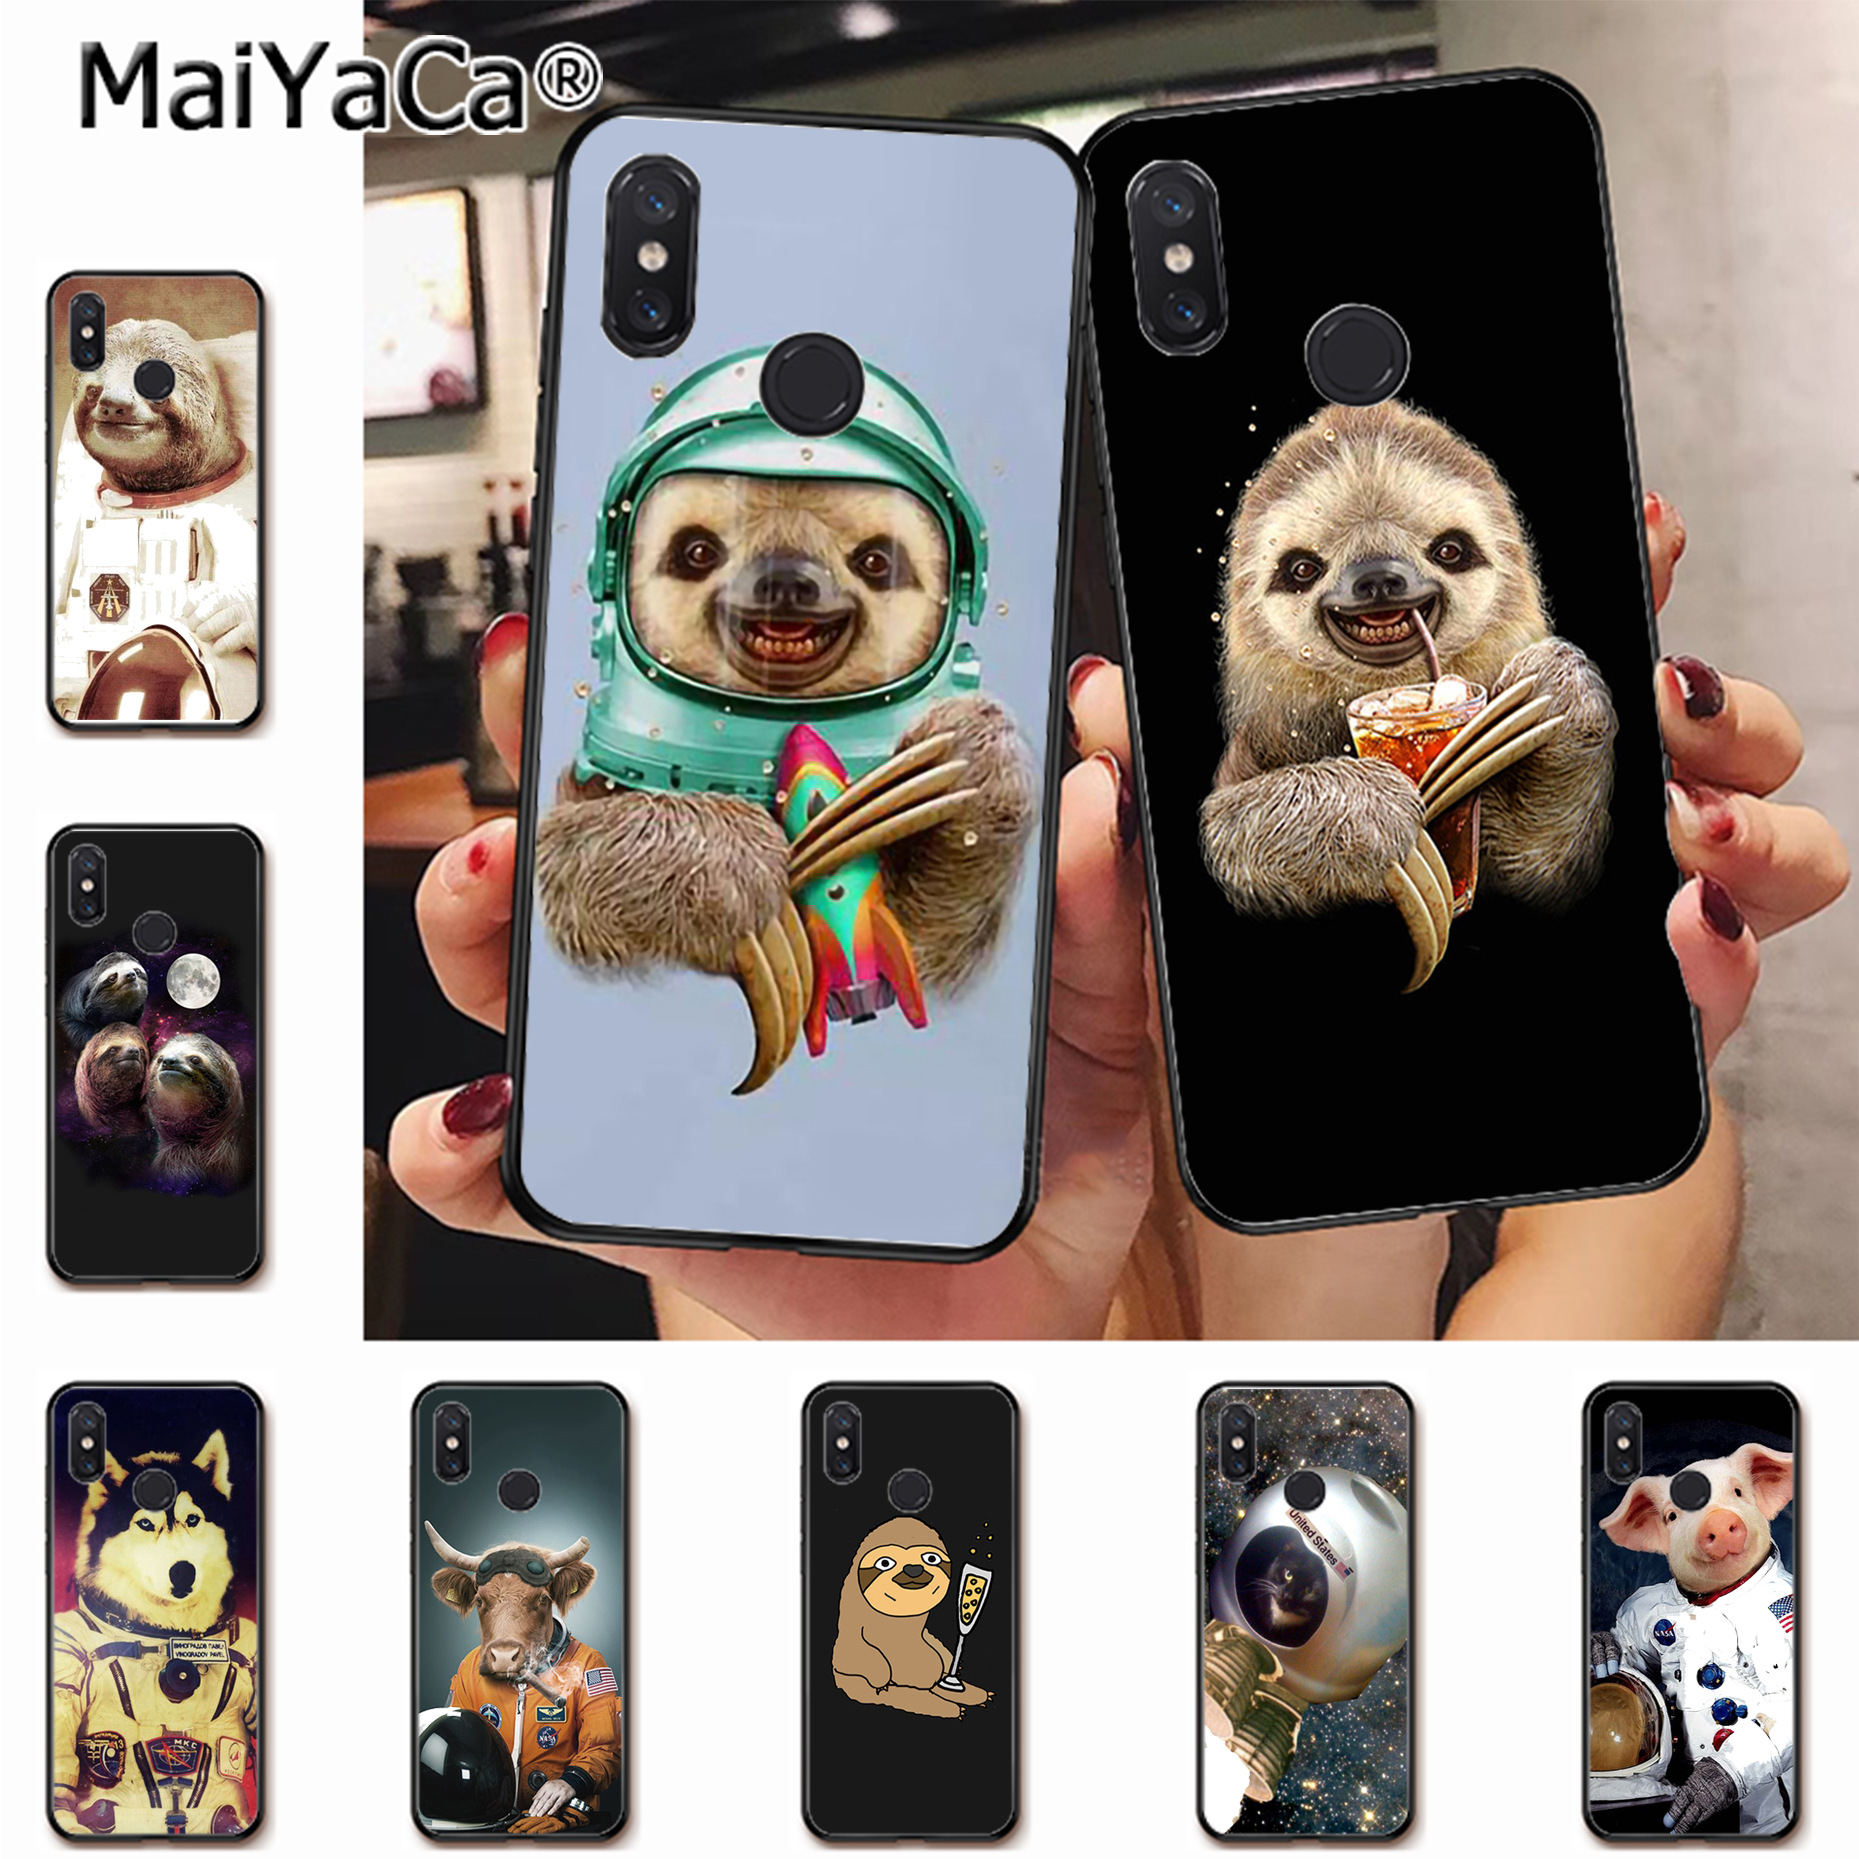 sloth astronaut phone case - HD 1859×1859